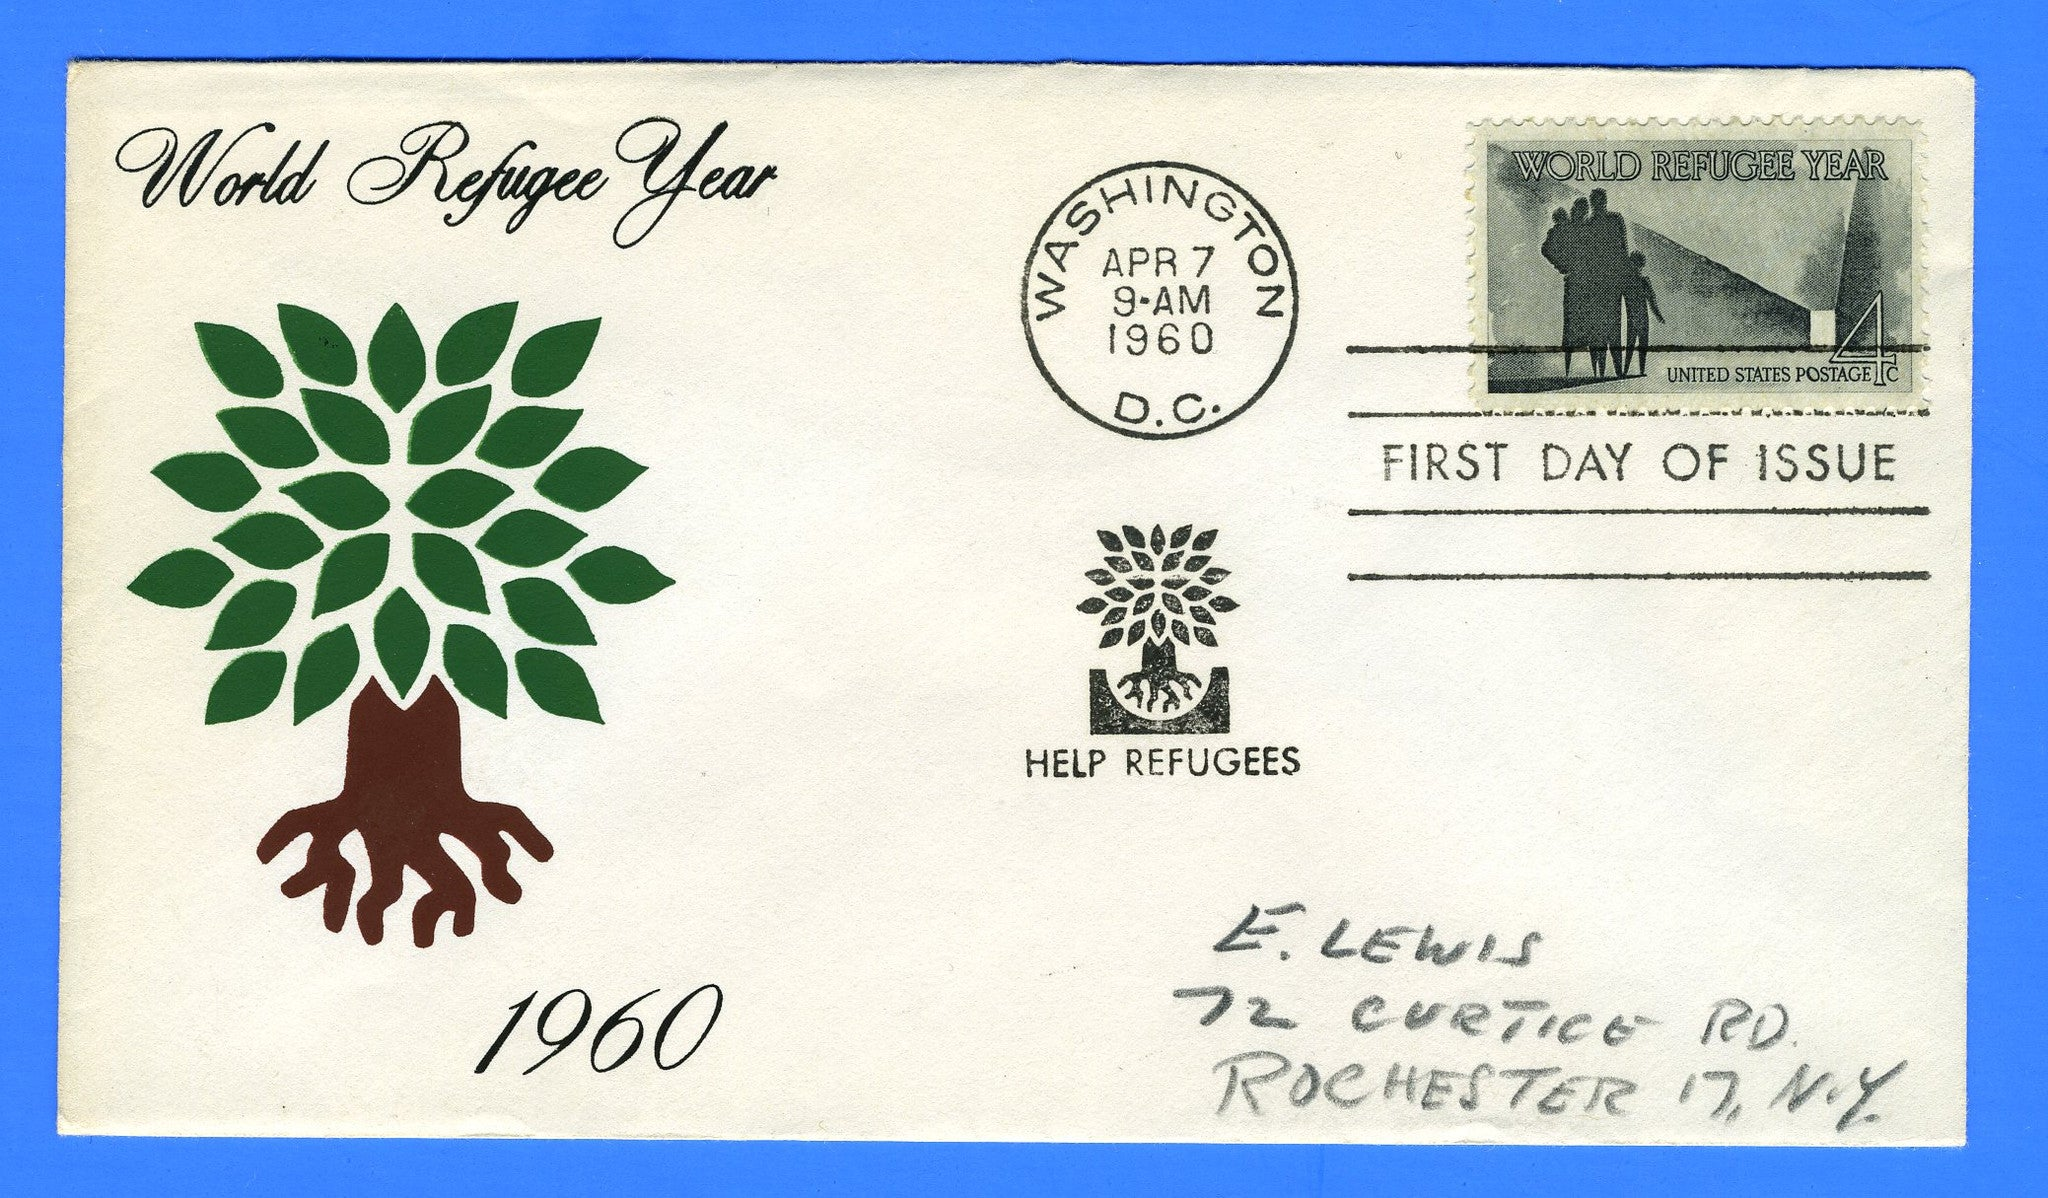 Scott 1149 4c World Refugee Year Silk Screen First Day Cover by Eric Lewis - Very Rare - Only Six Known Copies